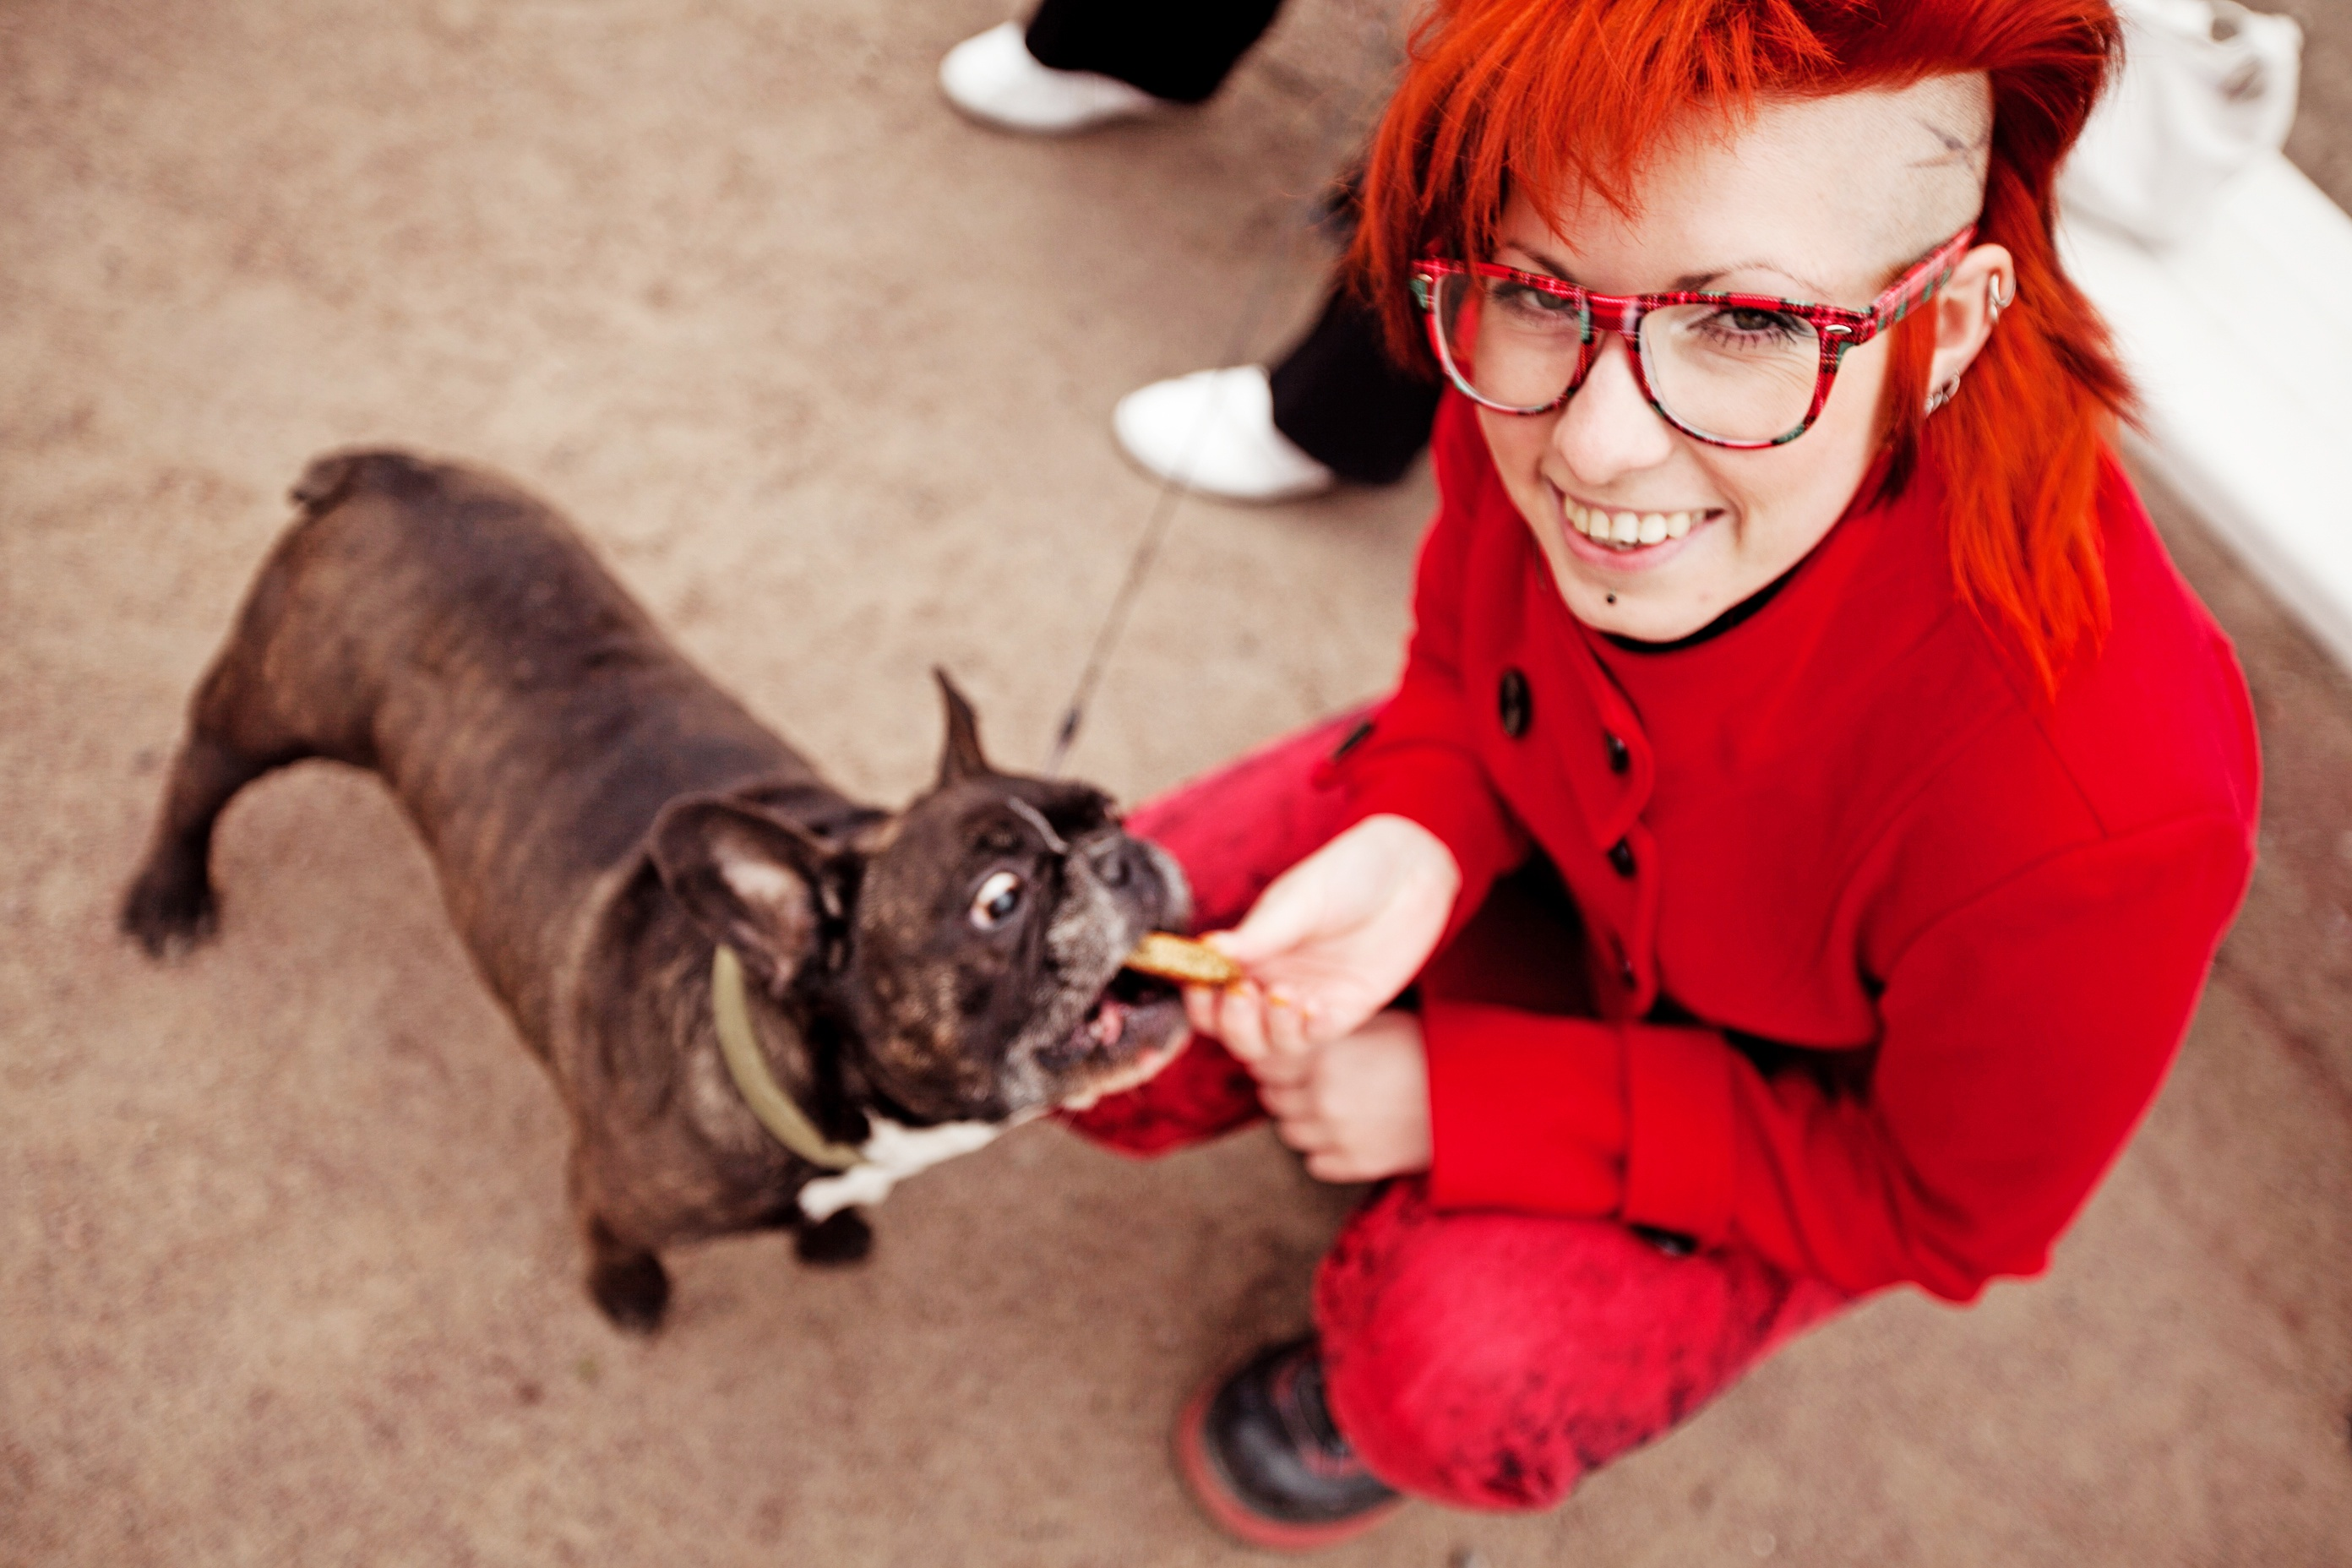 Be real, like this lady feeding fries to a frenchie.